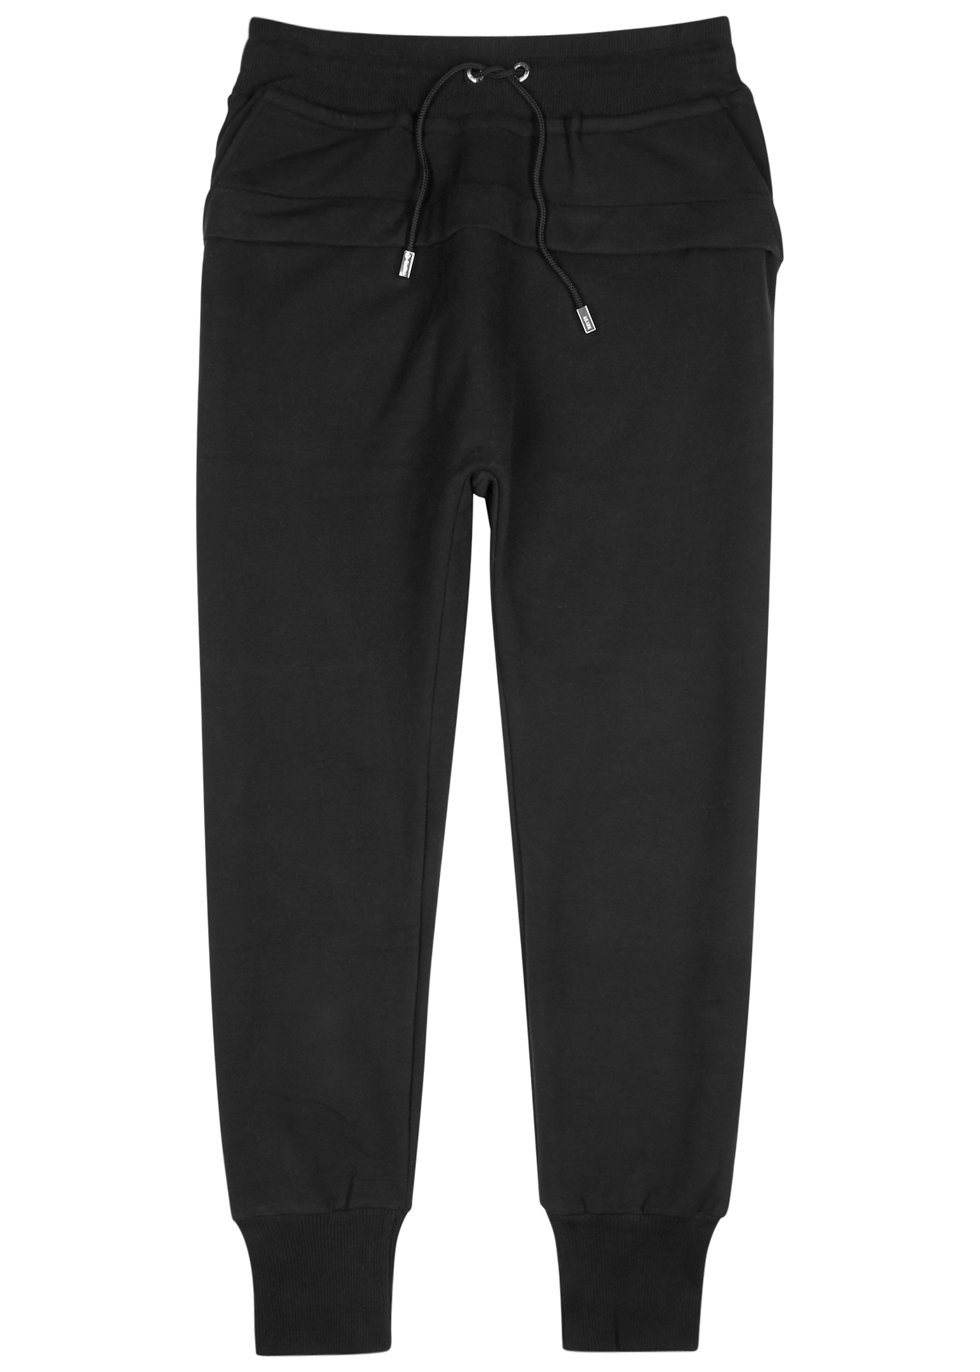 BLOOD BROTHER FORTUNE JERSEY JOGGING TROUSERS